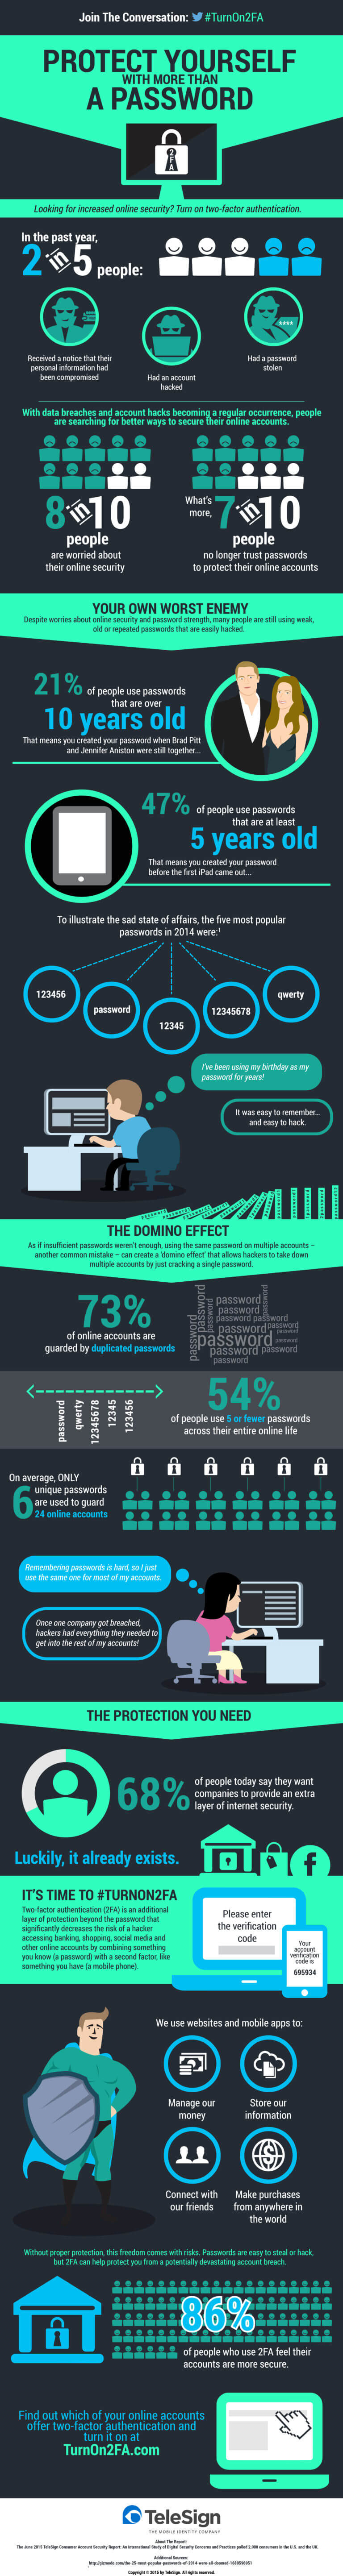 Protect Yourself With More Than A Password infographic